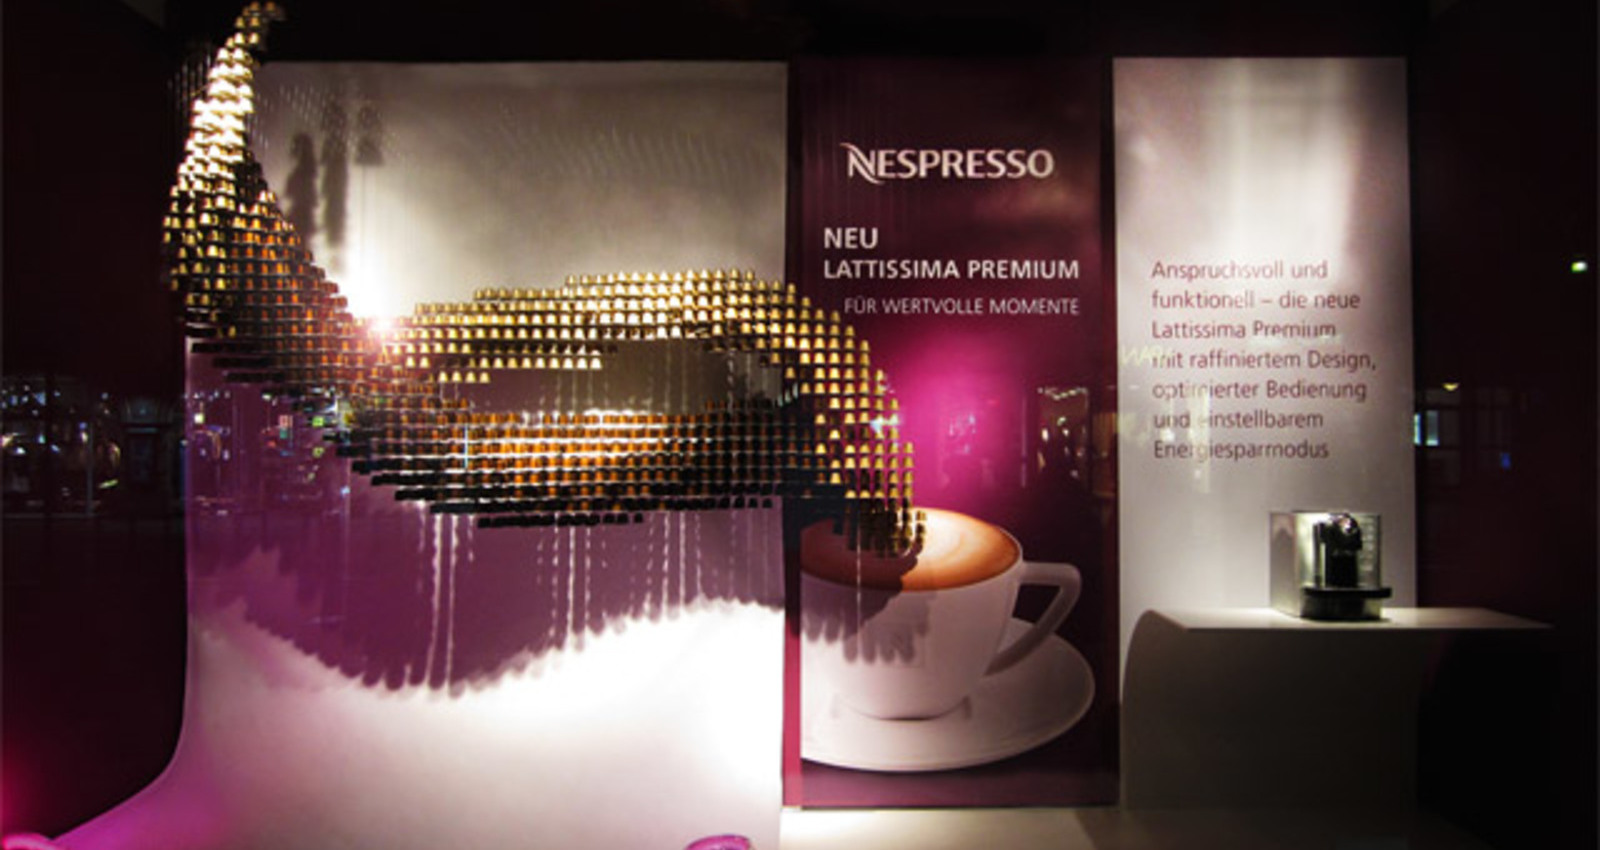 Nespresso - Display Windows Mönckebergstrasse